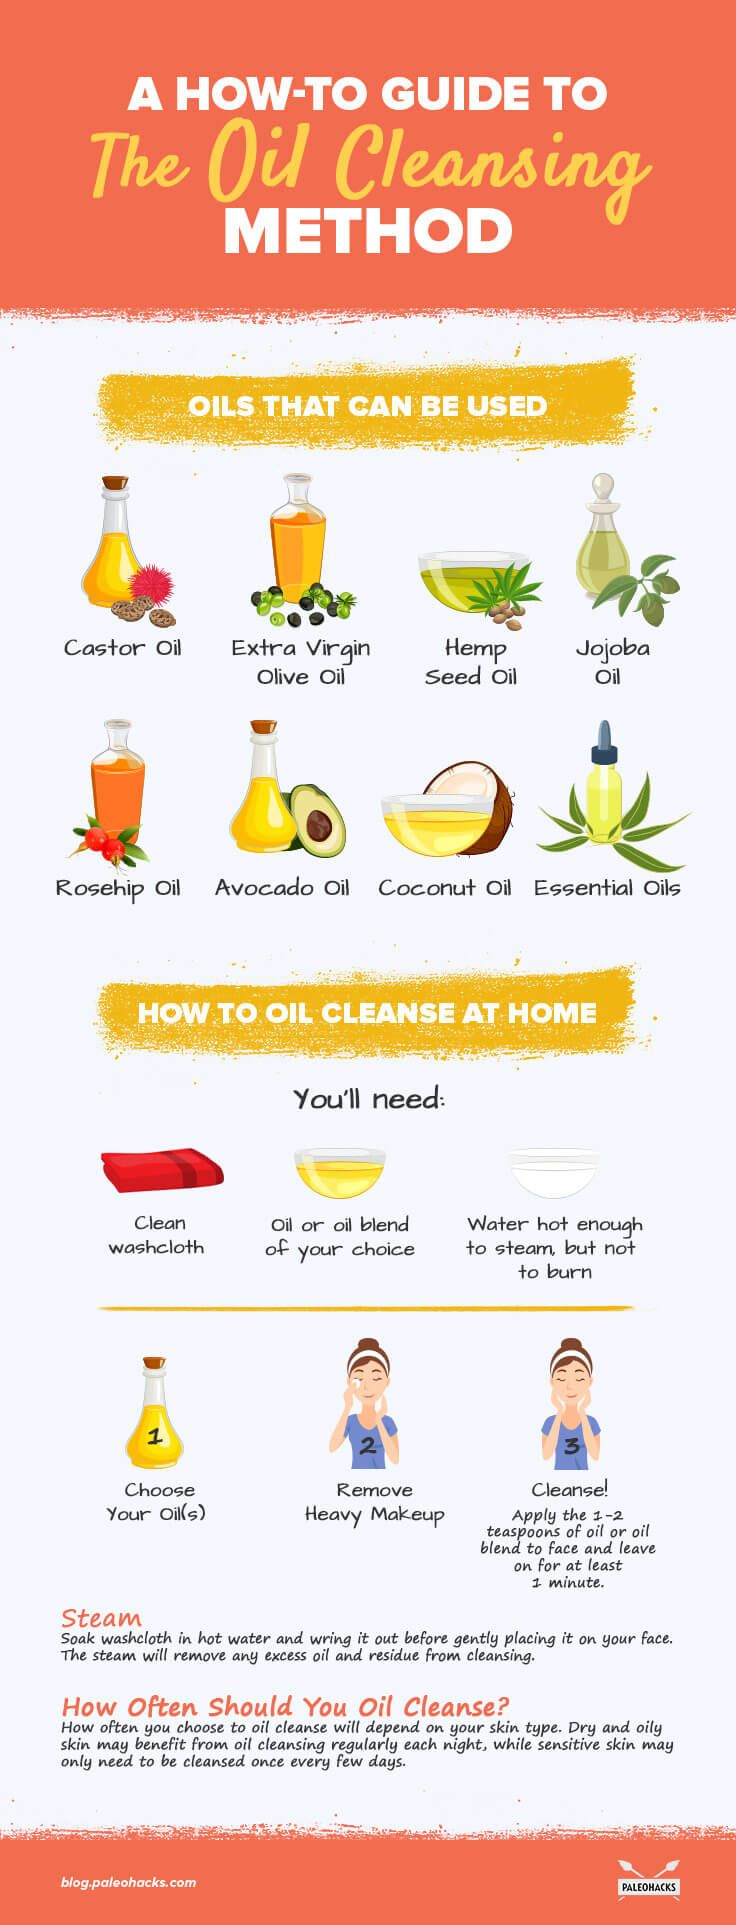 Ahowtoguidetotheoilcleansing